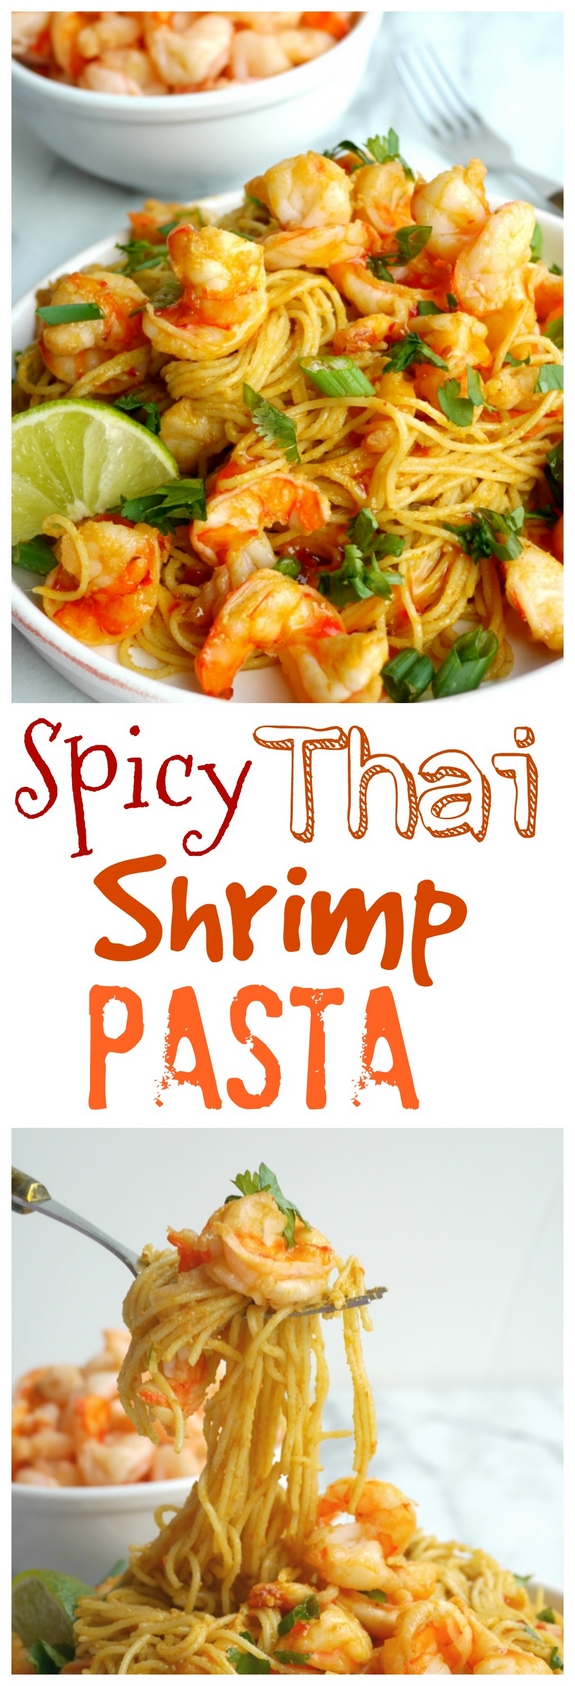 VIDEO + RECIPE: This Spicy Thai Shrimp Pasta is so simple to make you just might serve it twice in one week. The sauce comes together easily in the blender and is packed with flavor. Don't worry about having leftovers, they reheat perfectly from NoblePig.com. via @cmpollak1